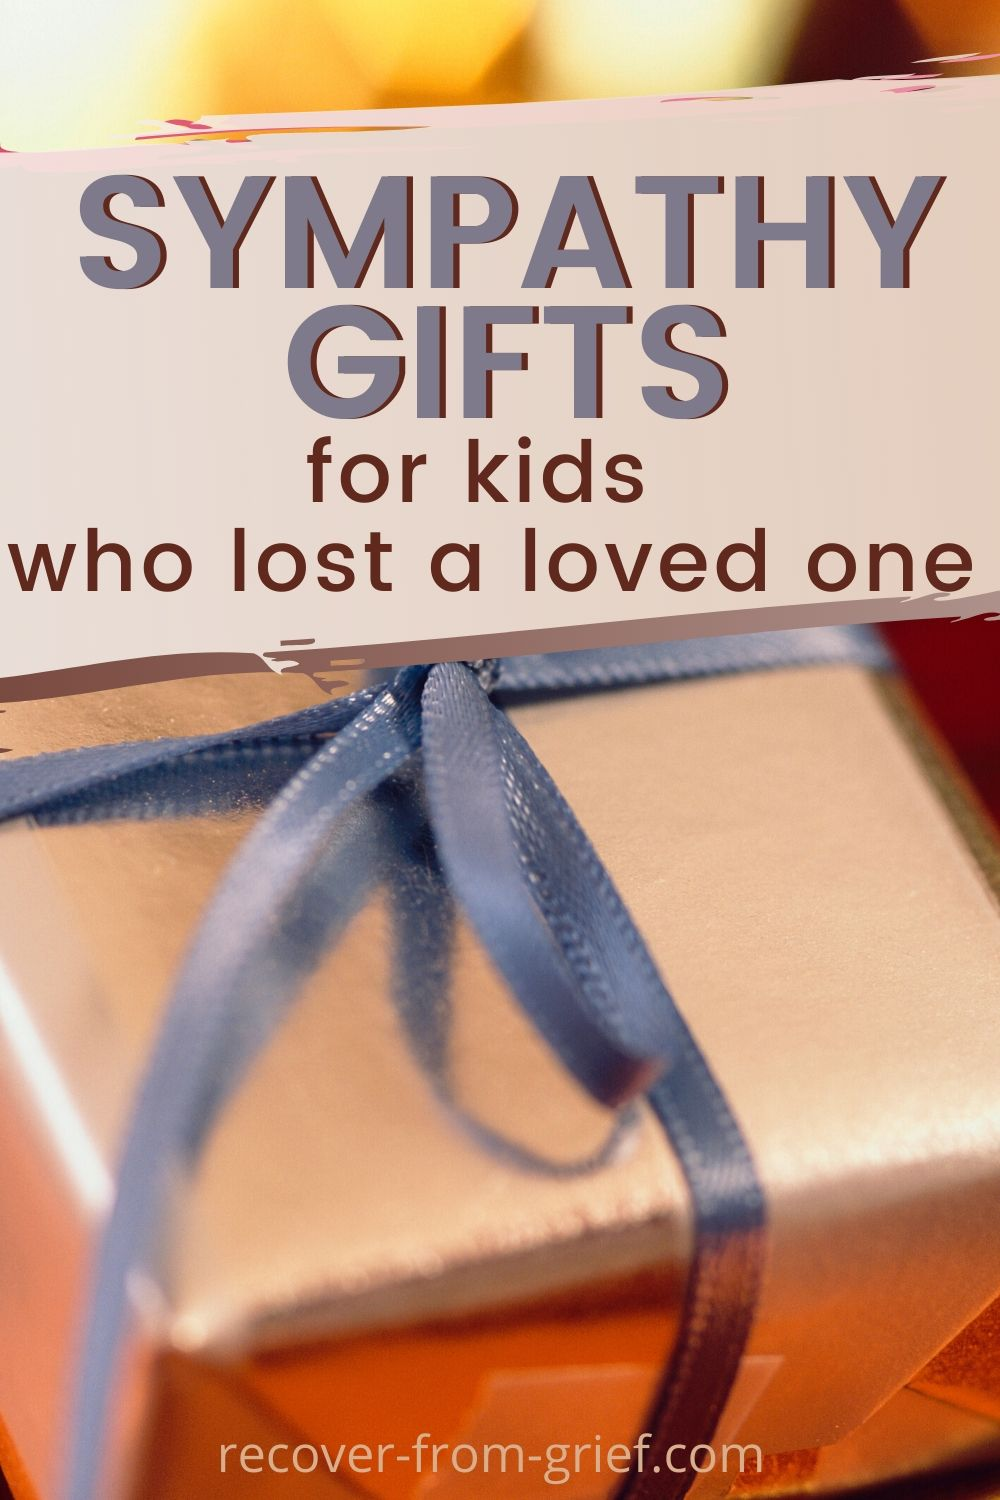 Sympathy gifts for kids